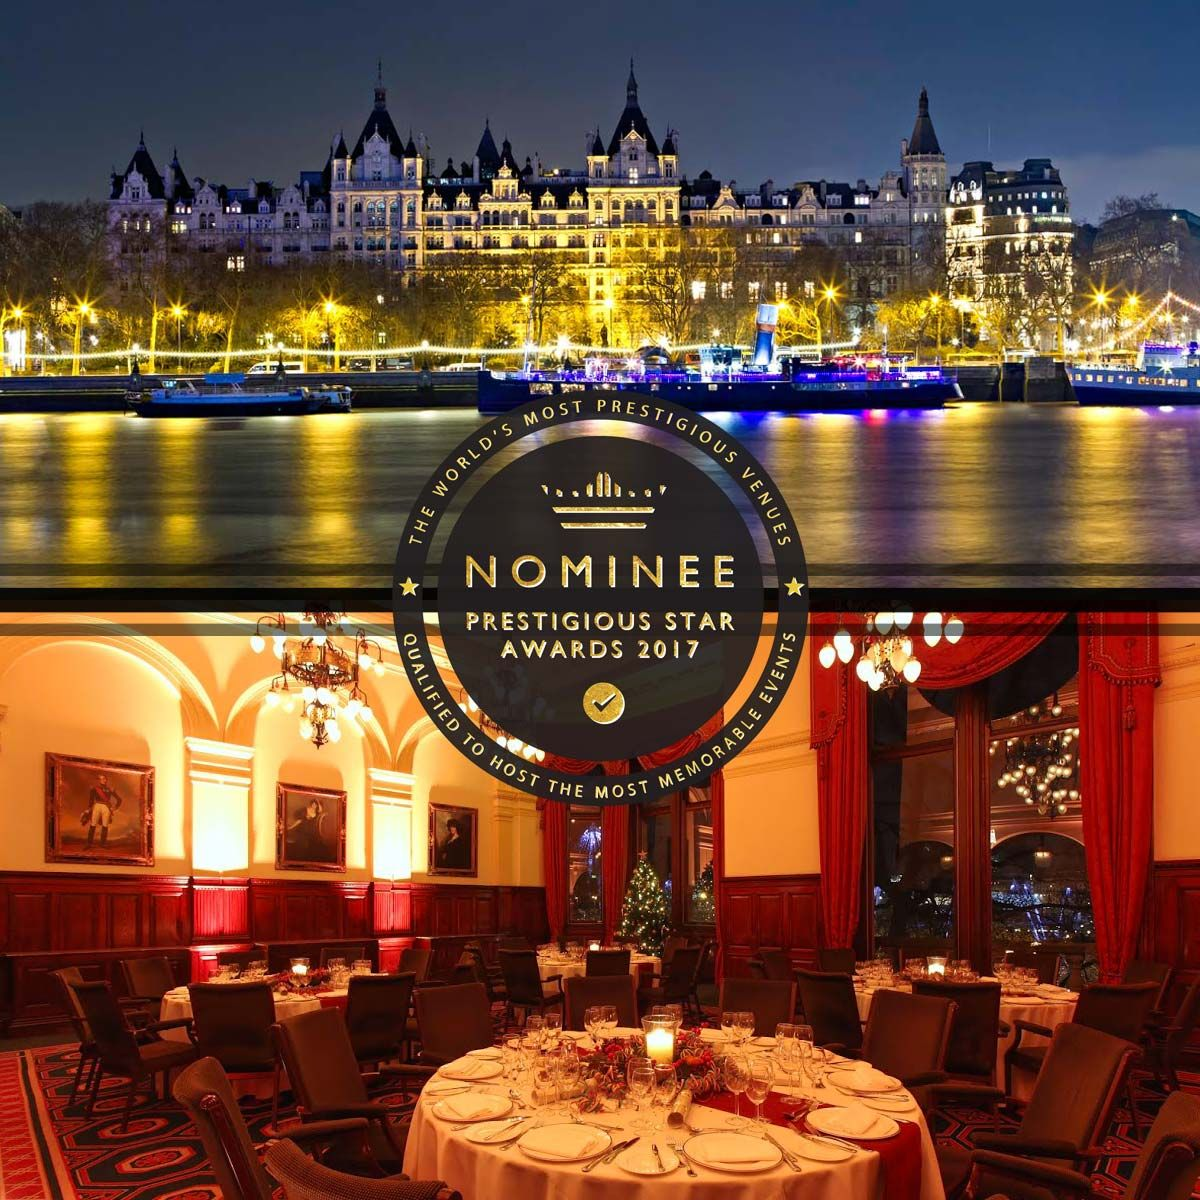 The Royal Horseguards Hotel and One Whitehall Place | Prestigious Star Awards 2017 Nominees ...